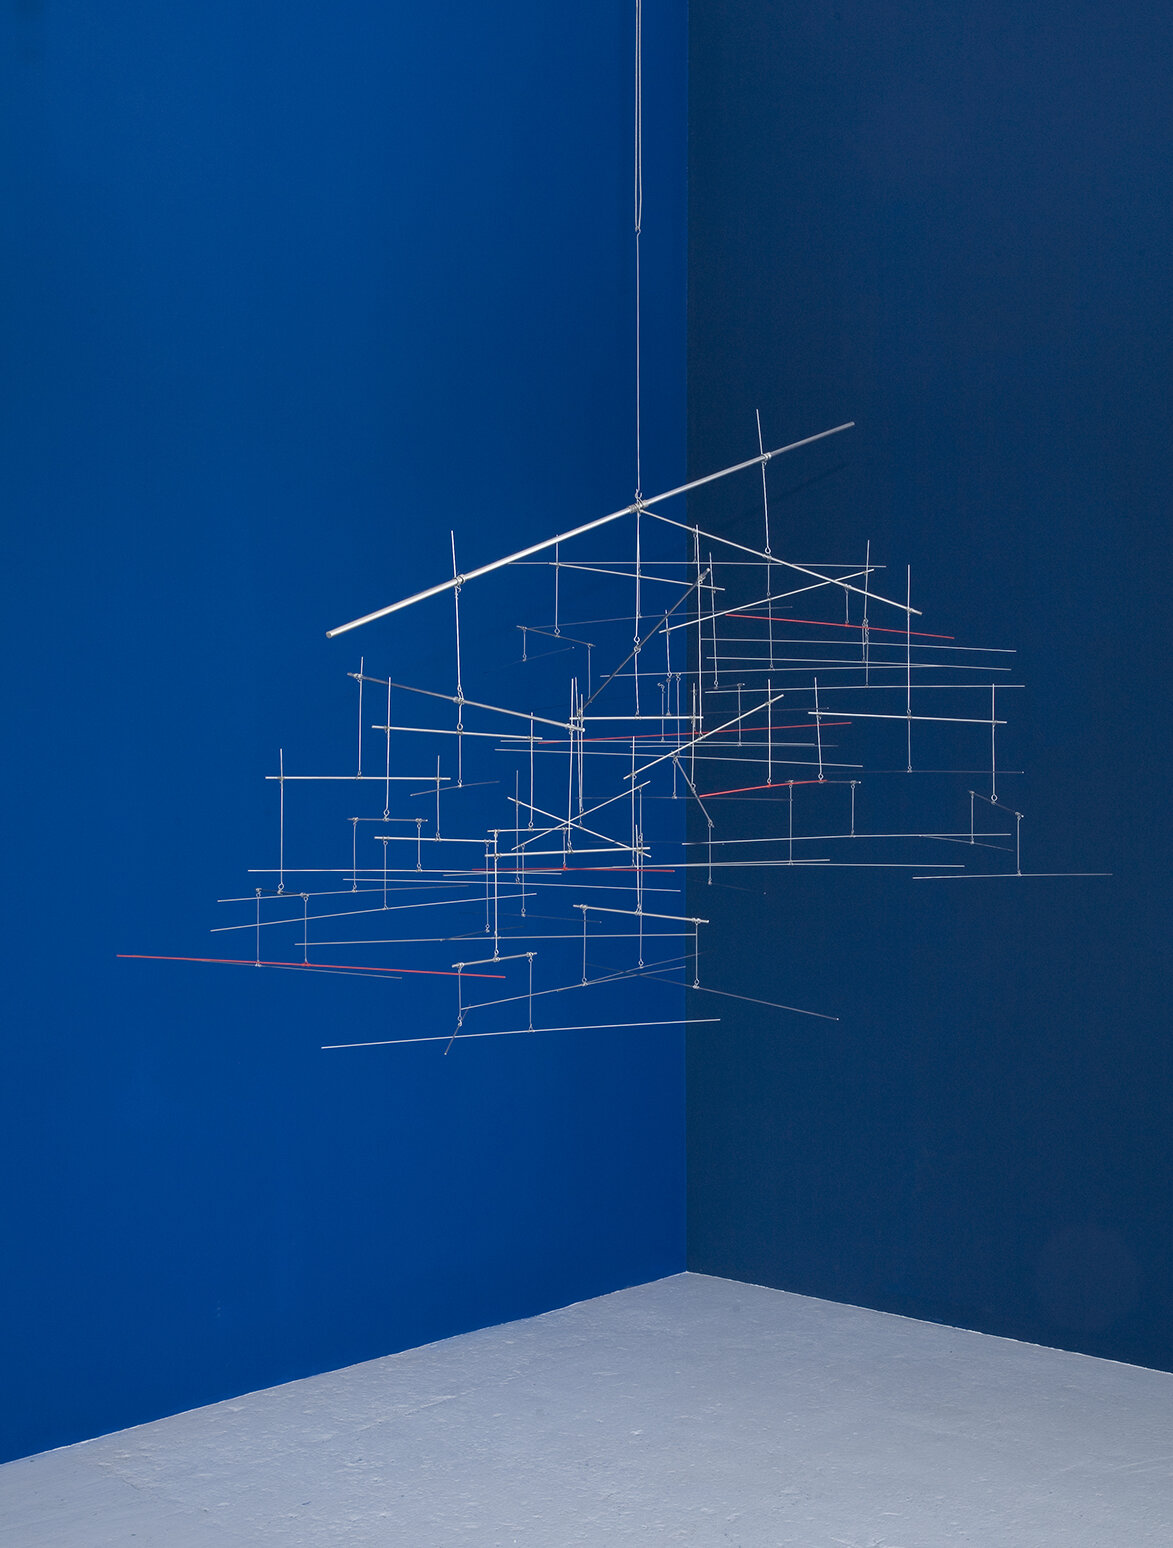 Linienschiff 20:31 , 2012  stainless steel and red pigment 45 1/4 x 69 1/4 x 53 1/2 inches; 115 x 176 x 136 centimeters